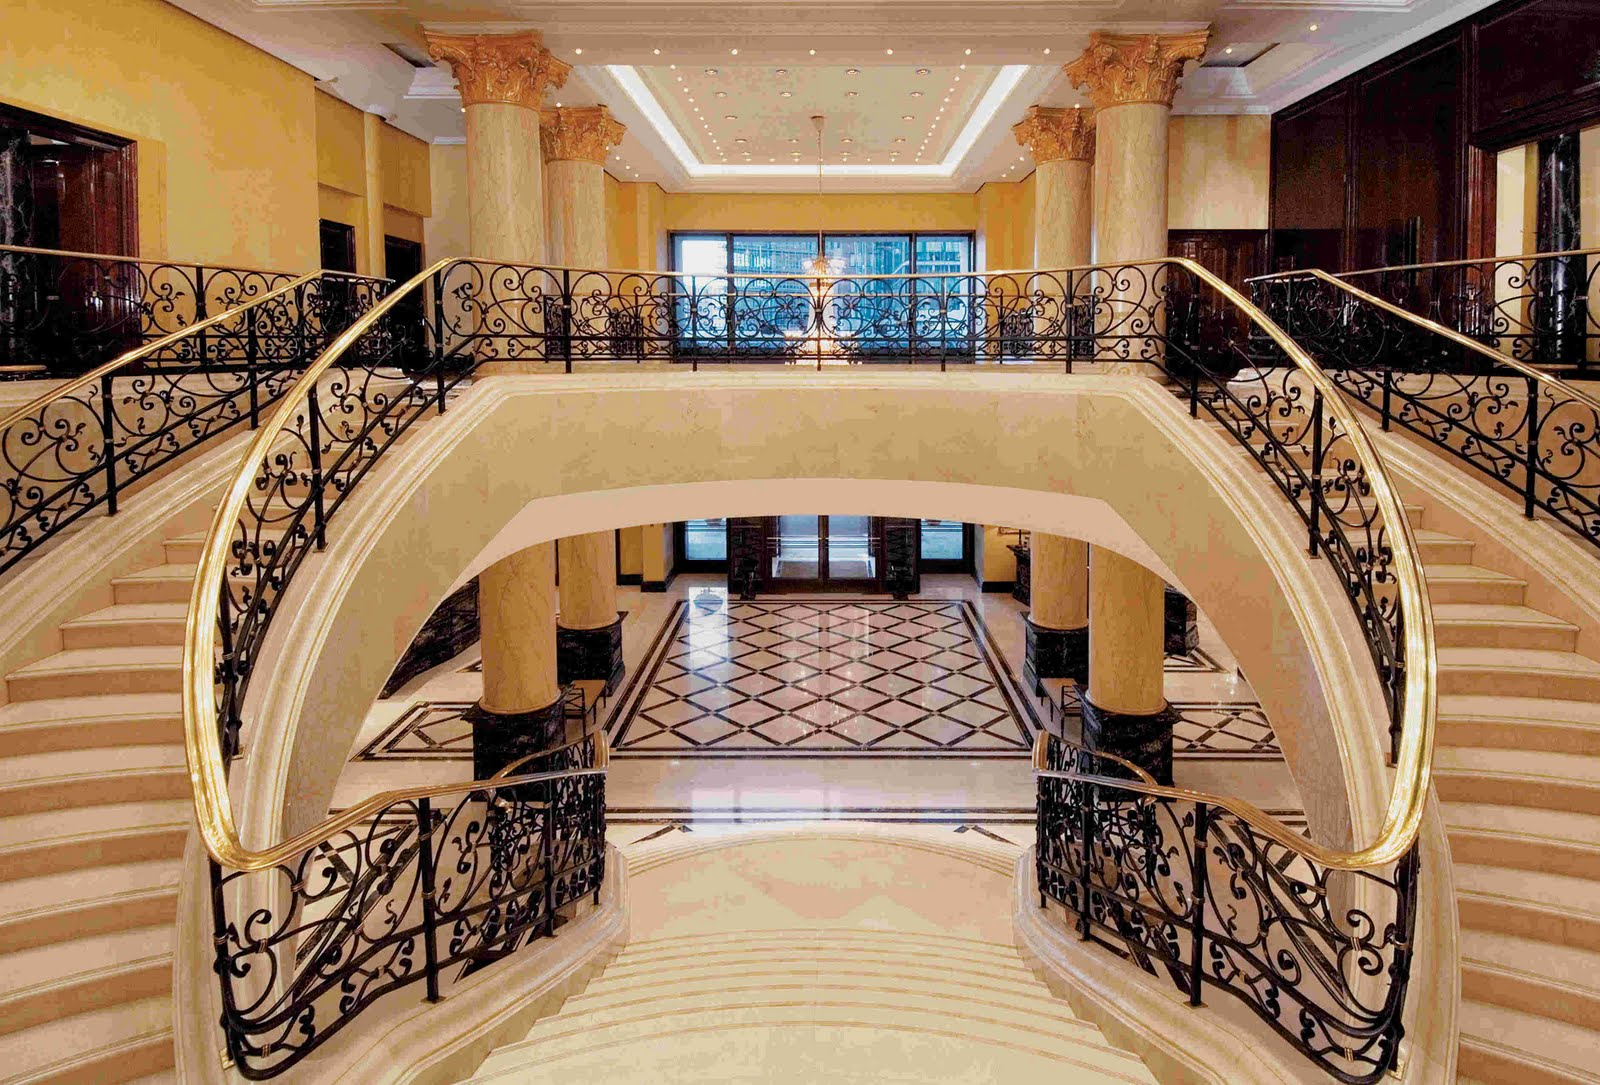 Featured Image of Double Victorian Staircase Luxury Design